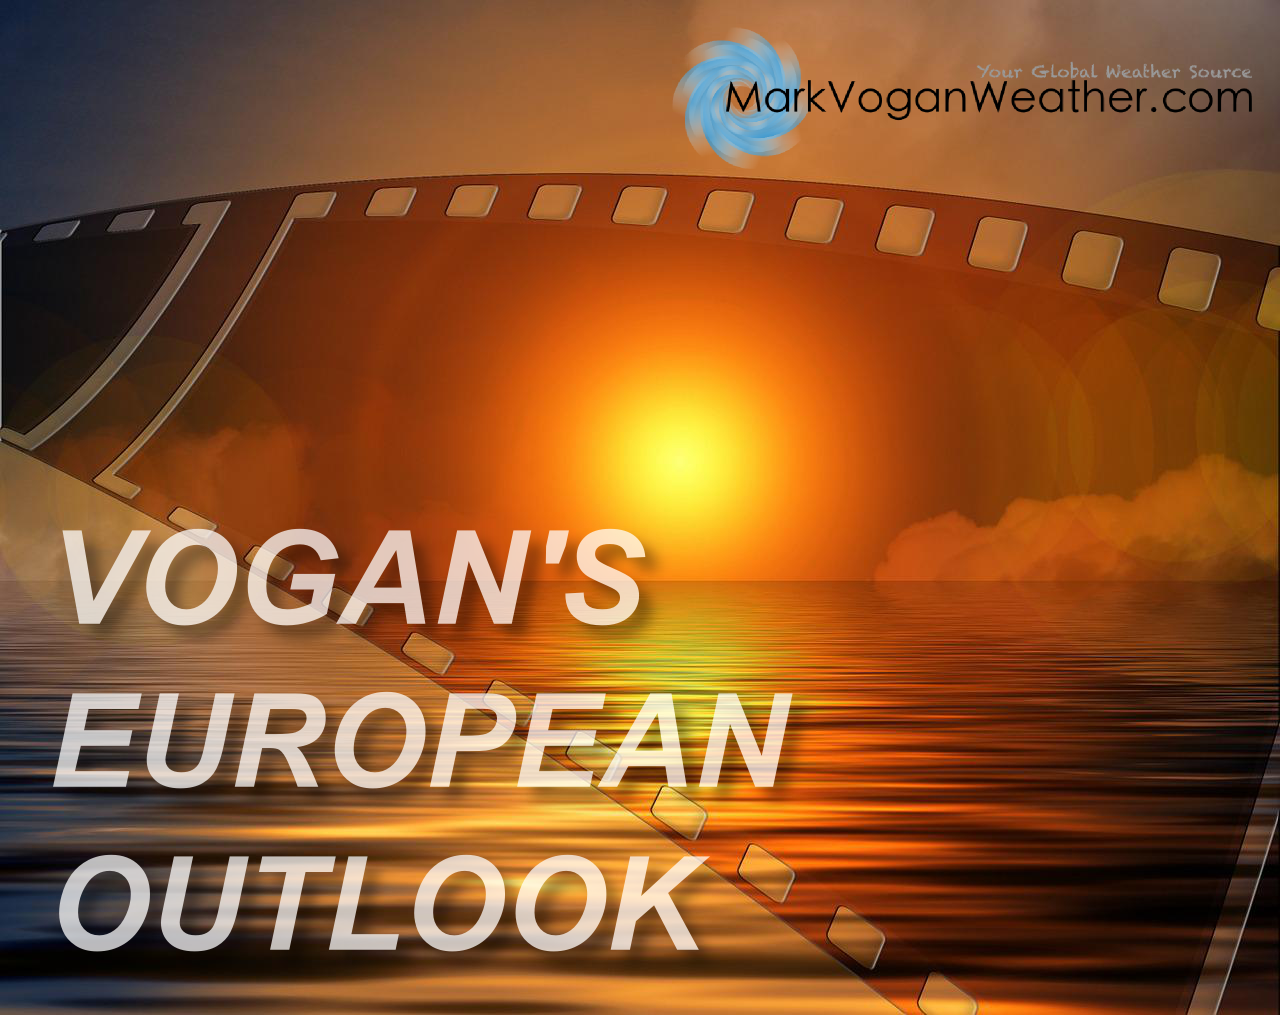 MON 30 JUNE: VOGAN'S EUROPEAN OUTLOOK